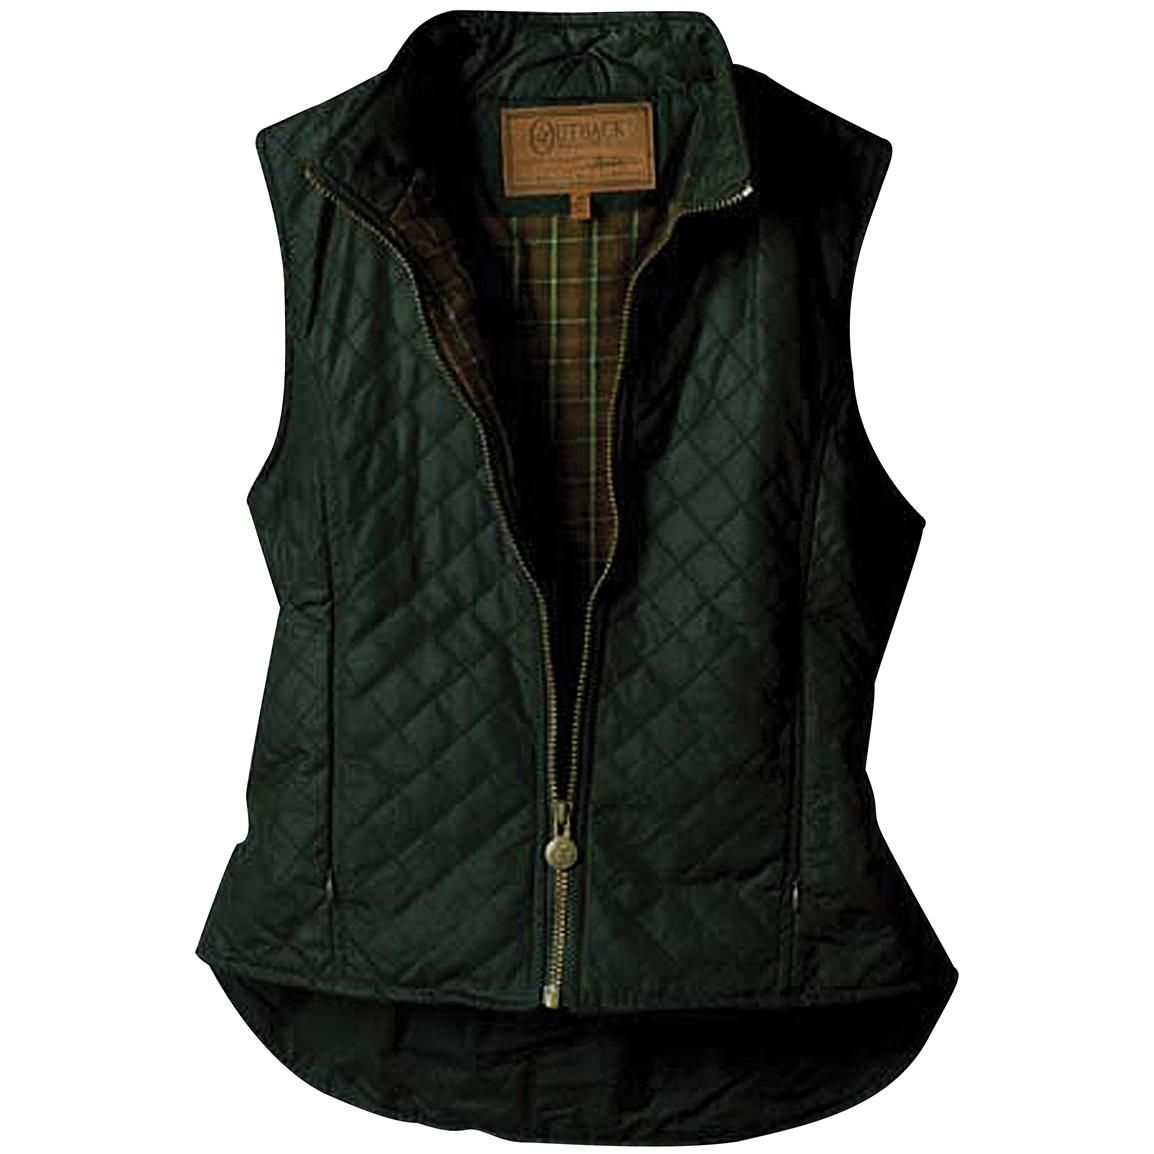 Women's Outback Trading Company® Quilted Oilskin Vest, Olive Green ... : quilted riding vest - Adamdwight.com